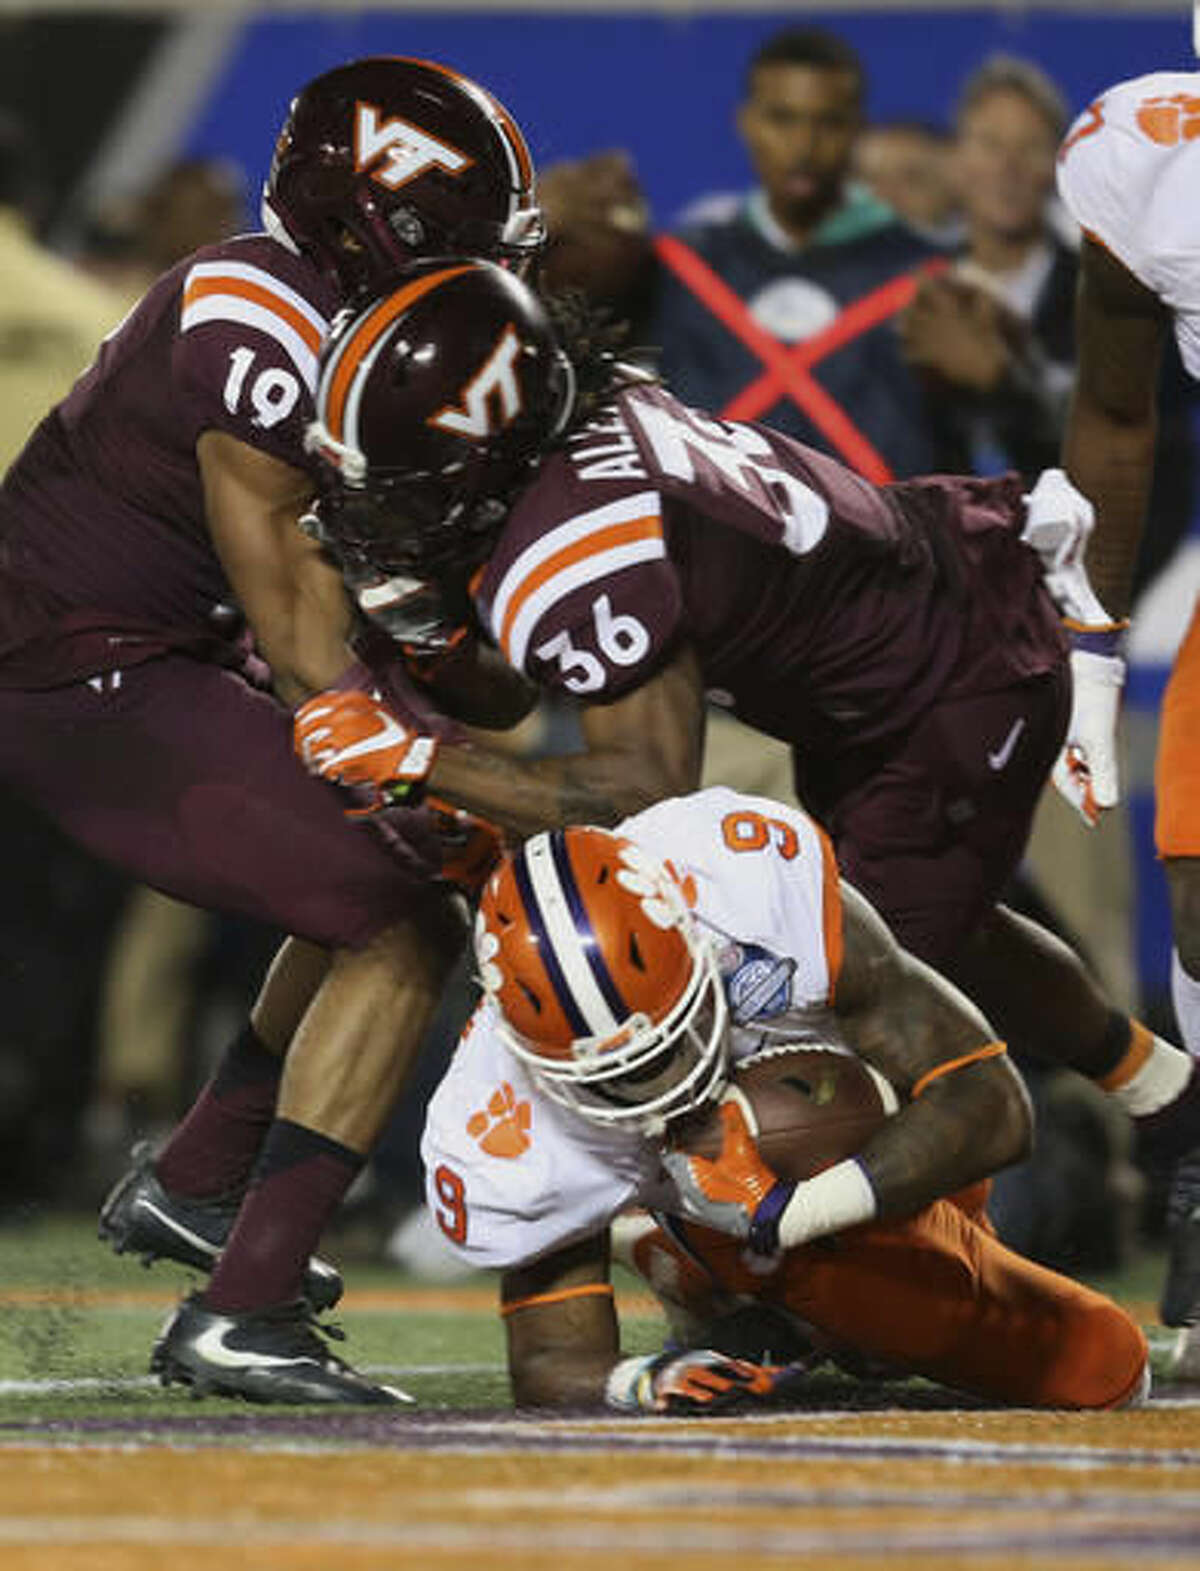 Clemson running back Wayne Gallman (9) scores a touchdown as Virginia Tech cornerback Adonis Alexander (36) and defensive back Chuck Clark (19) are late with the tackle, during the second half of the Atlantic Coast Conference championship NCAA college football game, Saturday, Dec. 3, 2016, in Orlando, Fla. (AP Photo/Willie J. Allen Jr.)